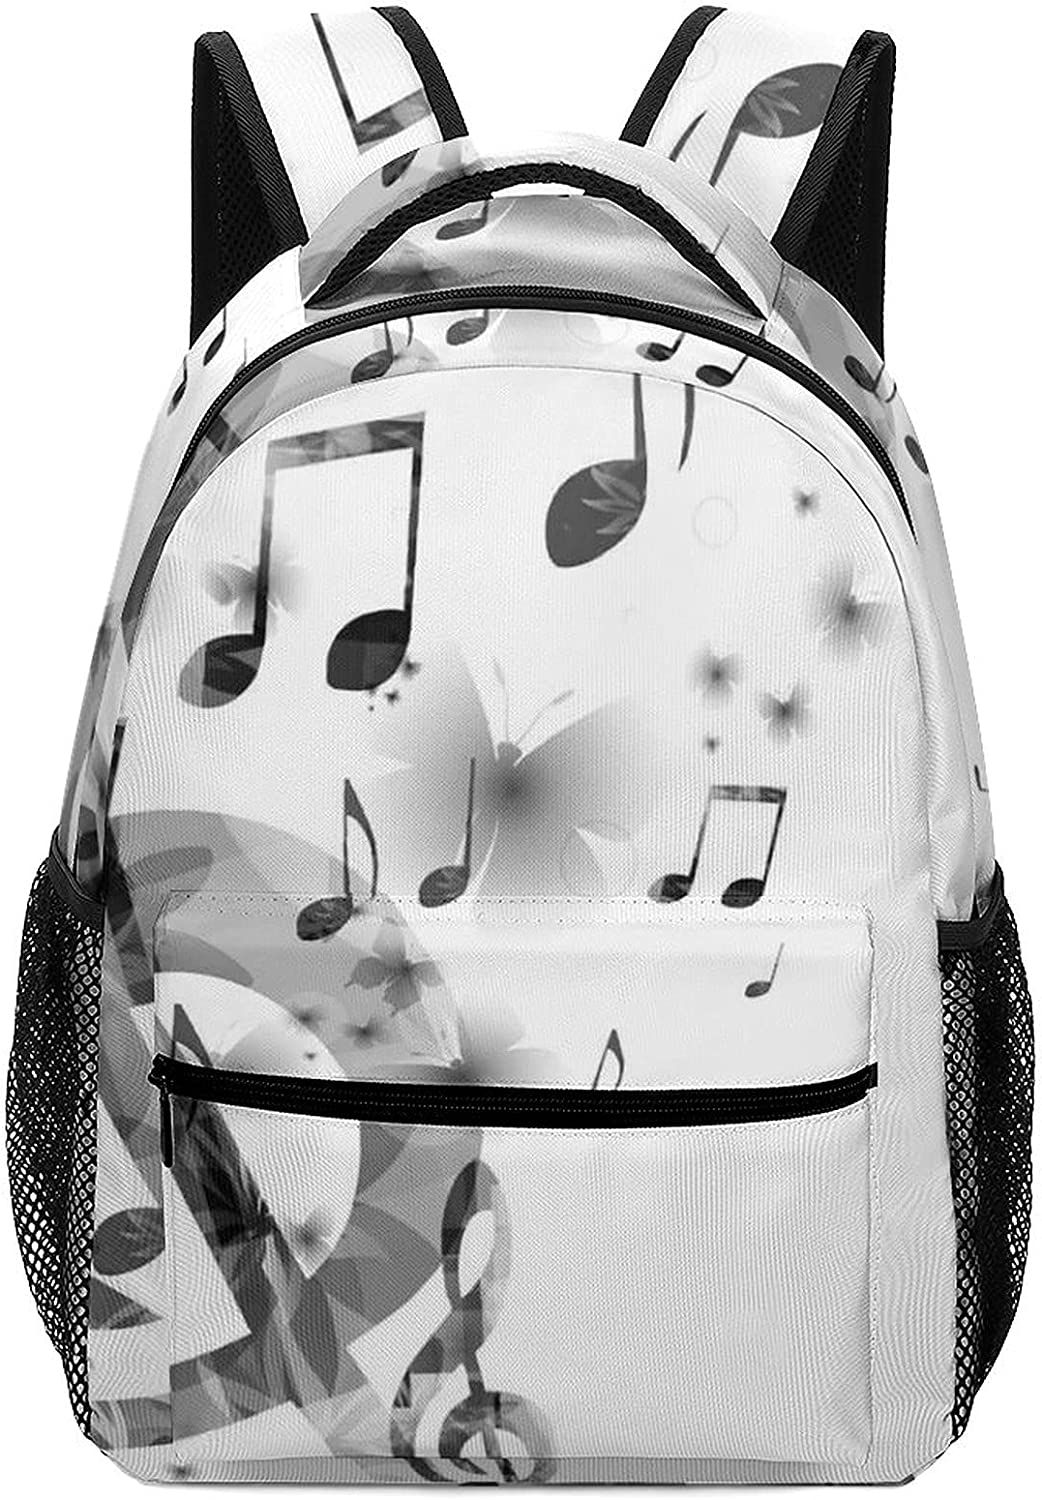 white-Music9 Max 82% OFF ASDFJKL children's backpack with padded Detroit Mall and adjusta